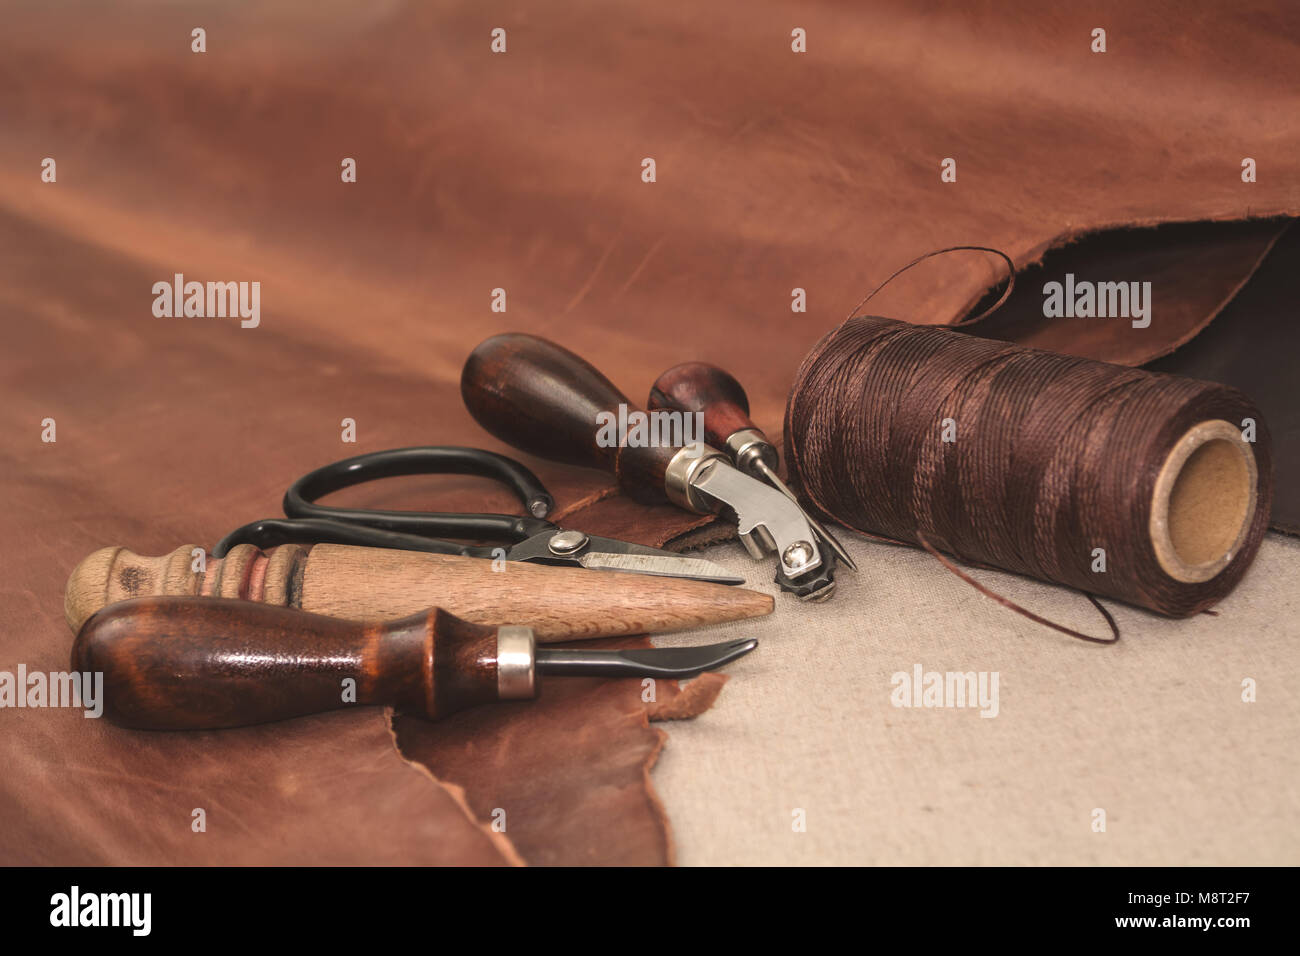 Tools for leather crafting and pieces of brown leather - Stock Image